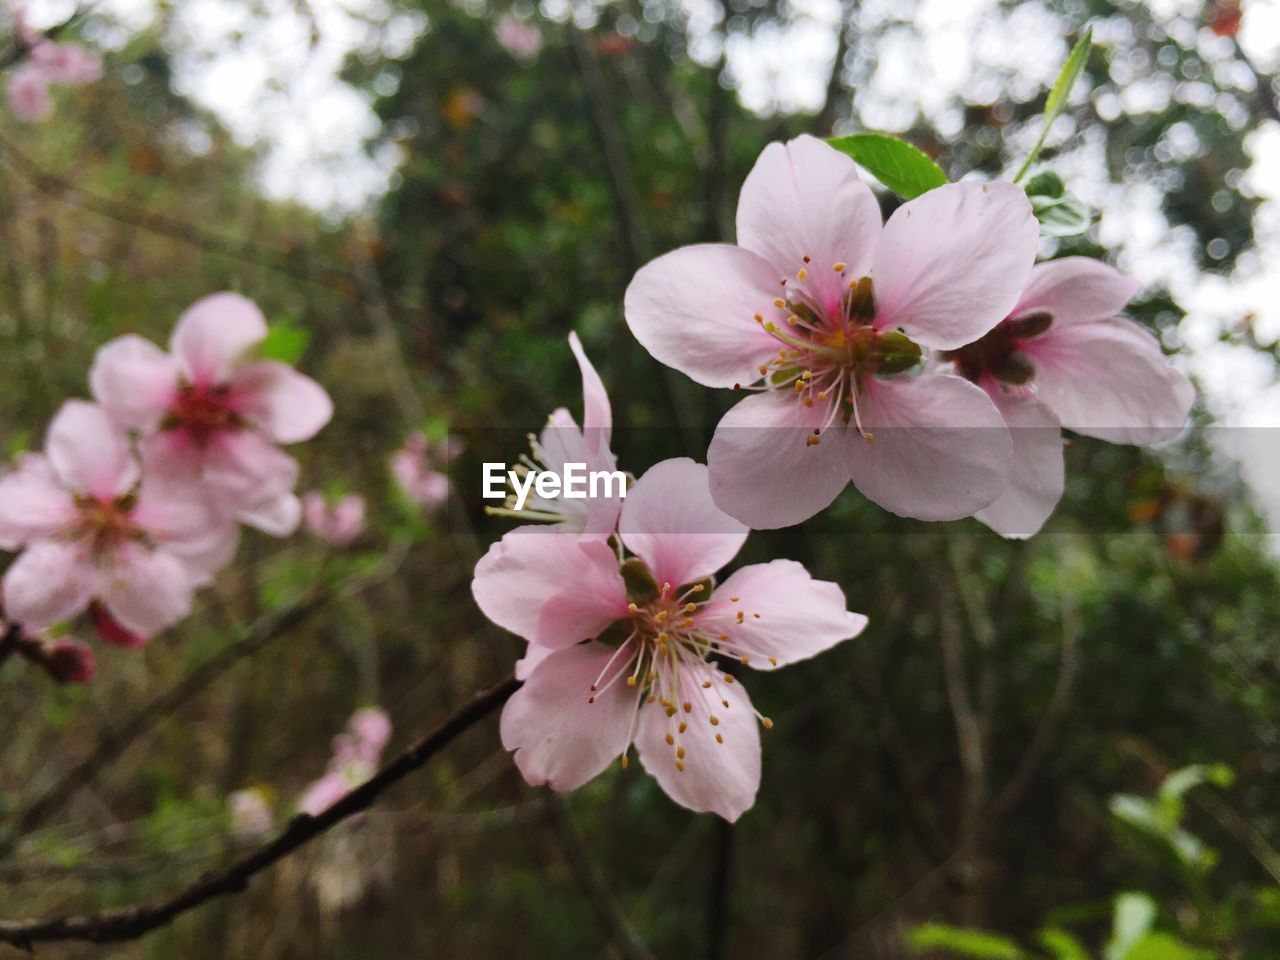 flower, fragility, petal, beauty in nature, freshness, blossom, growth, flower head, springtime, nature, white color, tree, pink color, stamen, apple blossom, no people, botany, day, pollen, branch, twig, close-up, outdoors, blooming